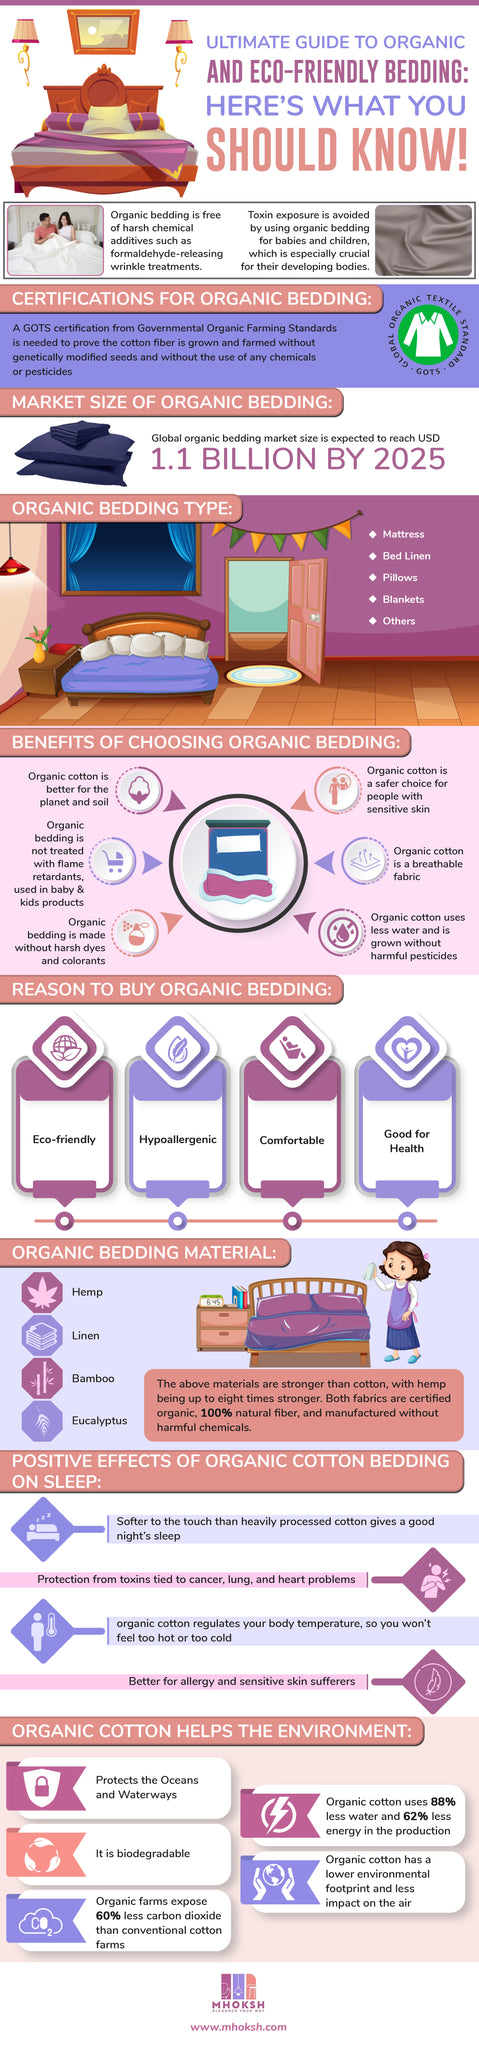 Ultimate Guide to Organic and Eco-Friendly Bedding - Mhoksh